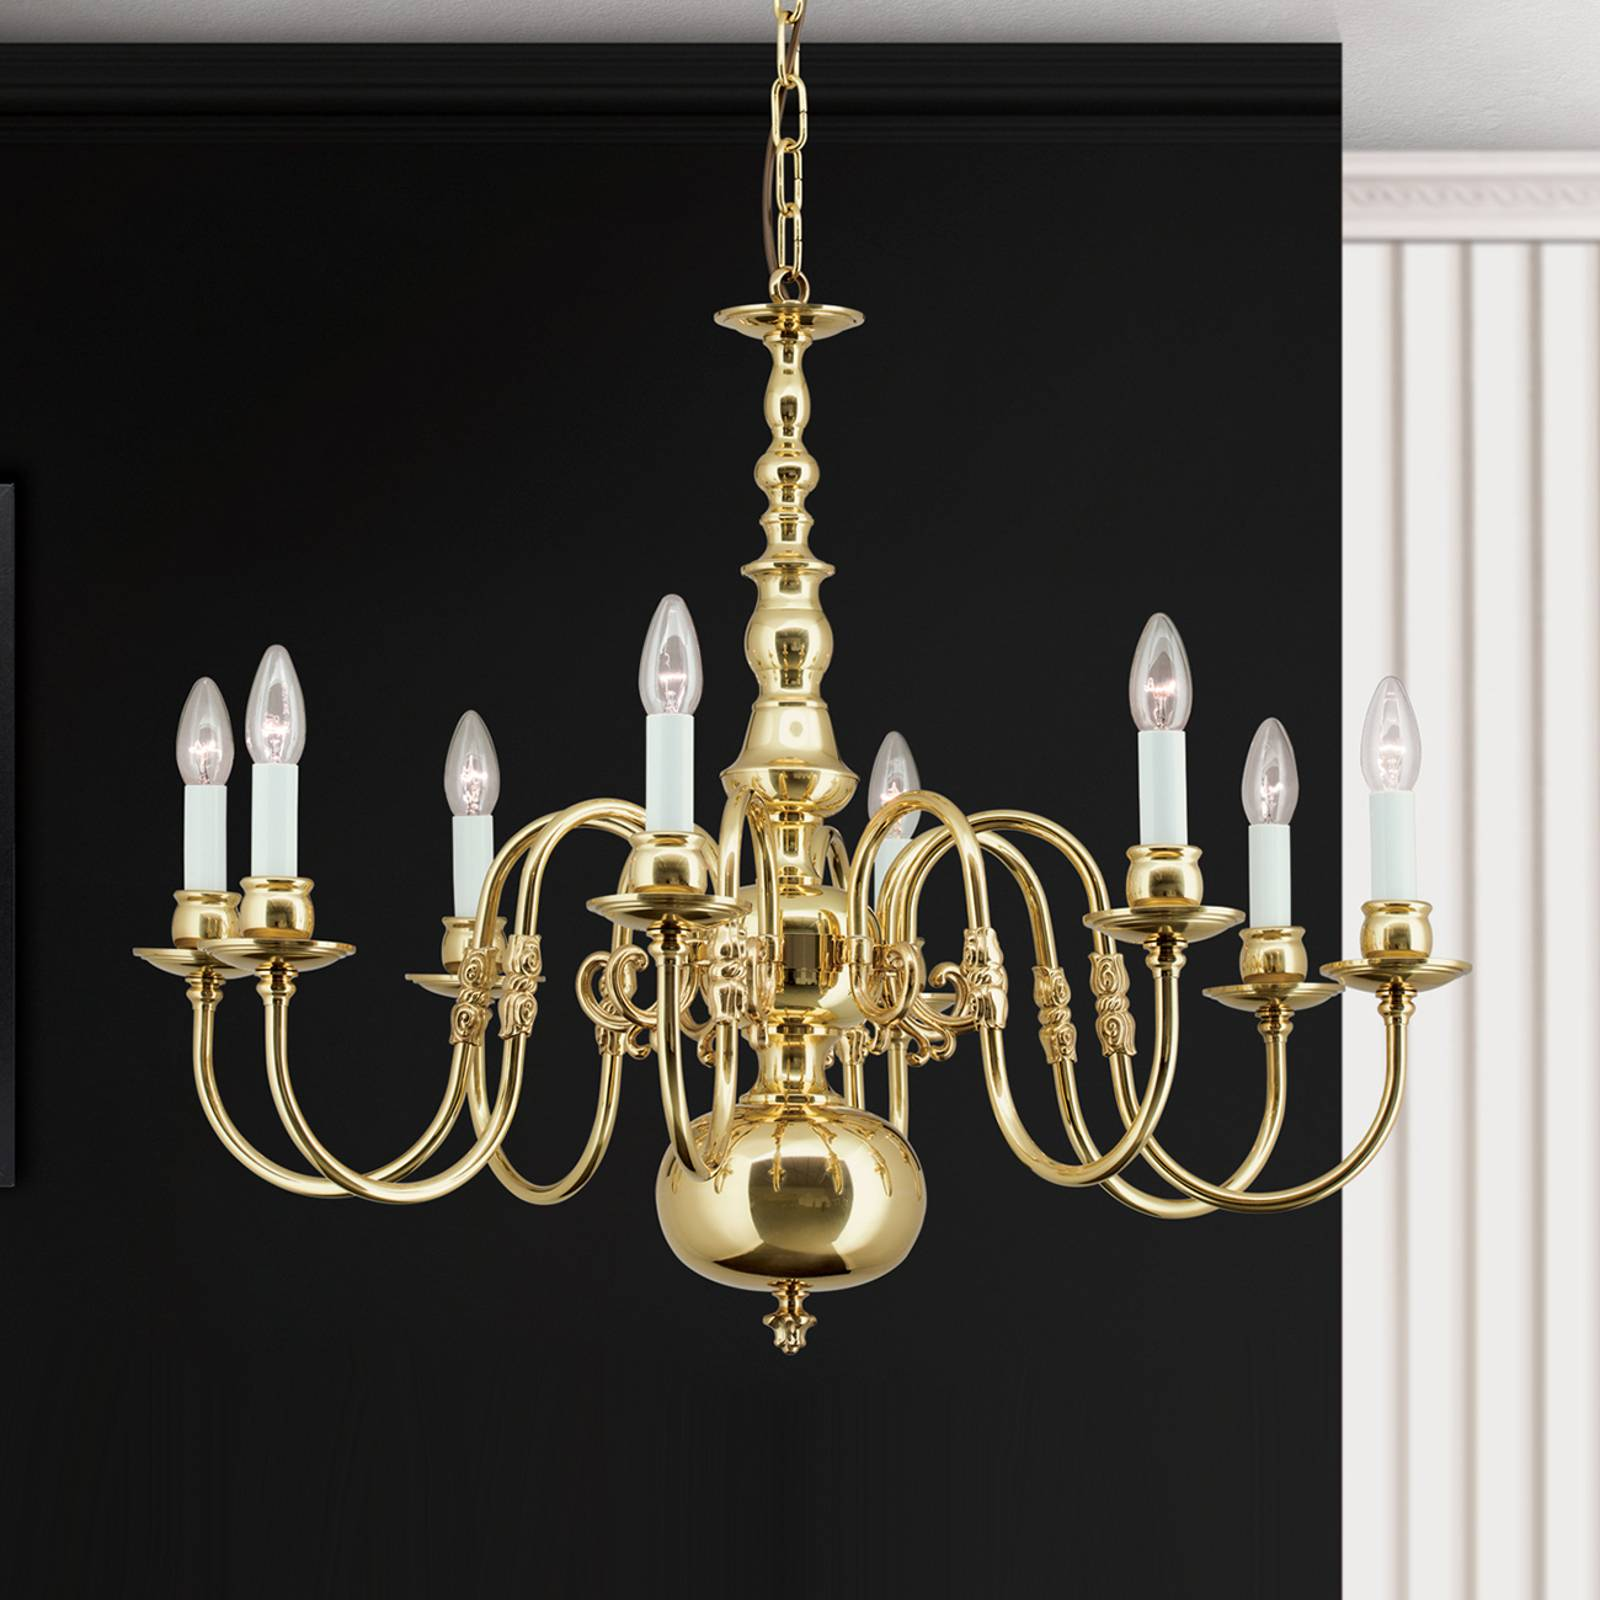 Imke Chandelier 8 Bulbs Polished Brass from Orion